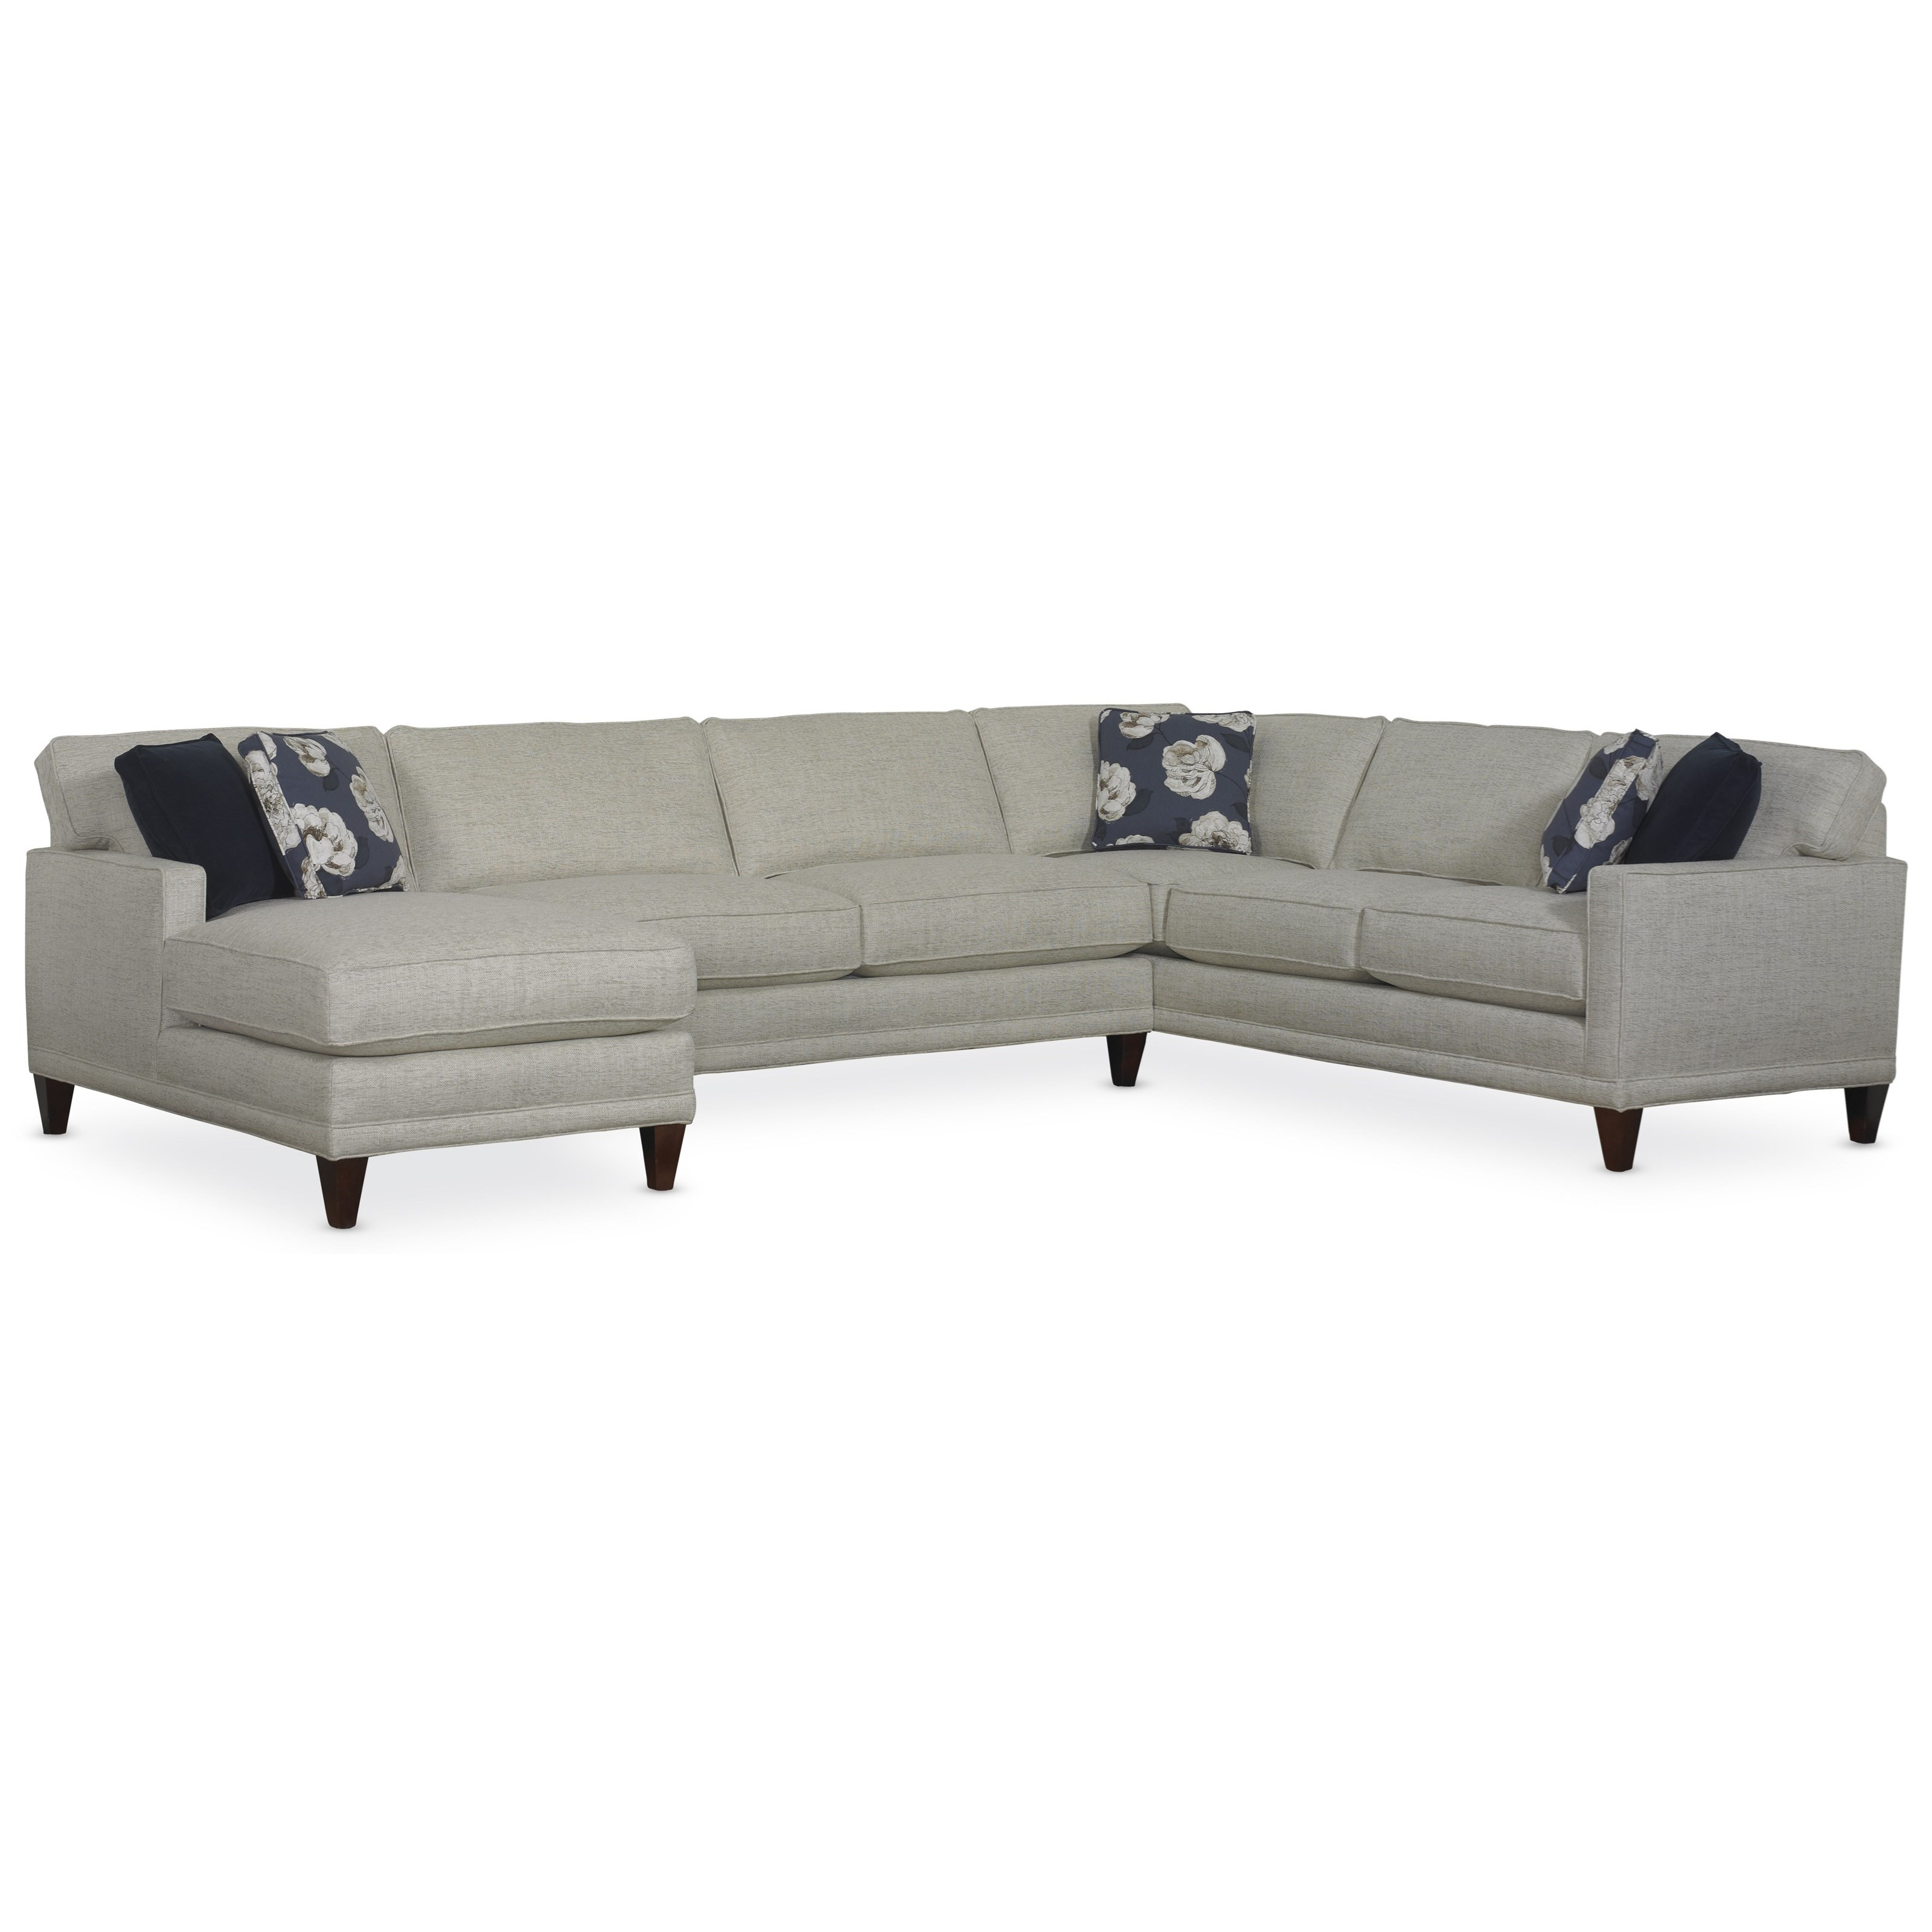 Rowe Townsend Contemporary Sofa Sectional Group | Sprintz Furniture ...